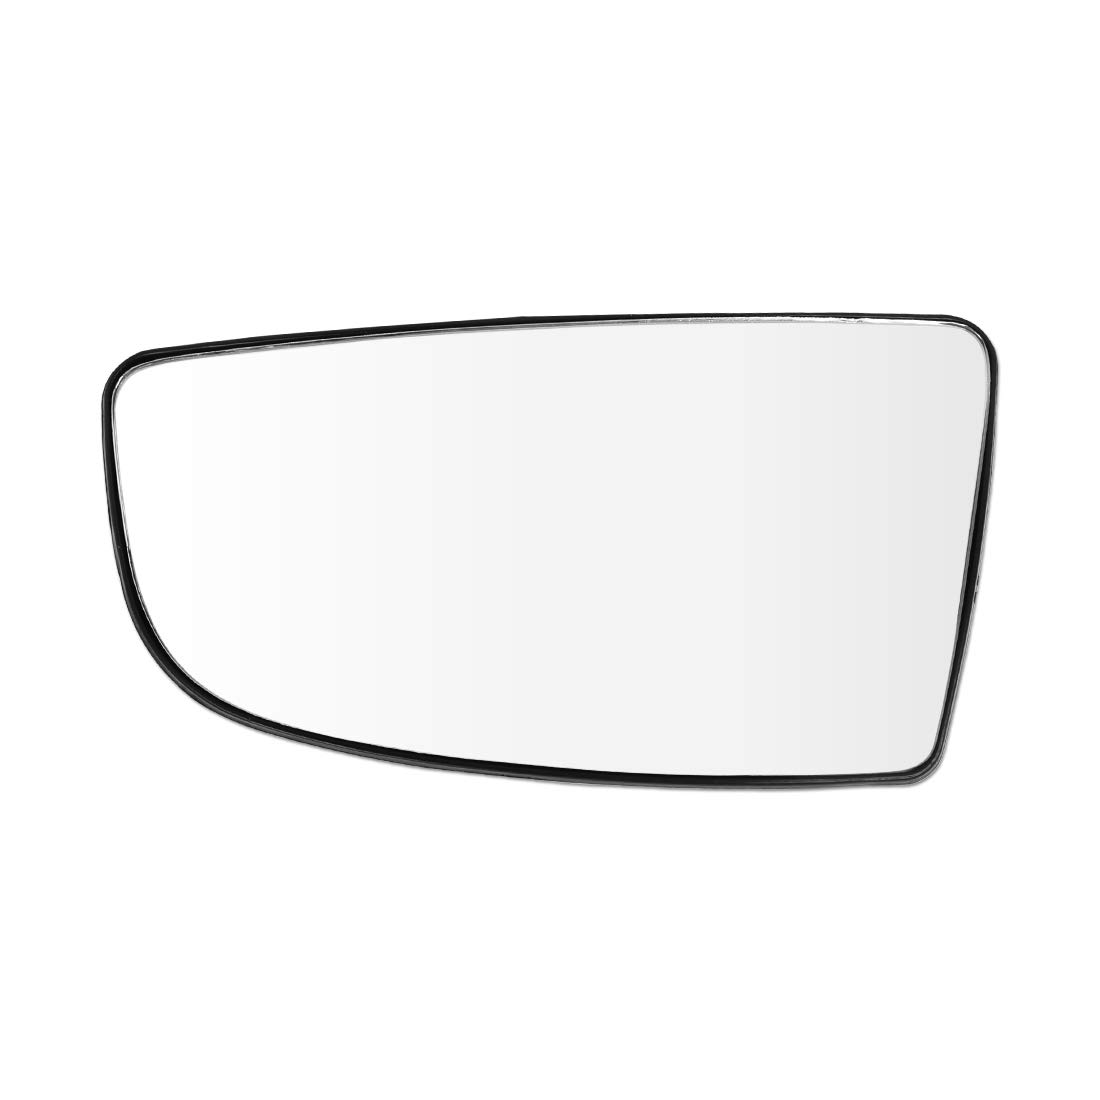 uxcell Right Side Lower Convex Mirror Glass with Backing Plate for Ford Transit T150 T250 T350 2015-2017